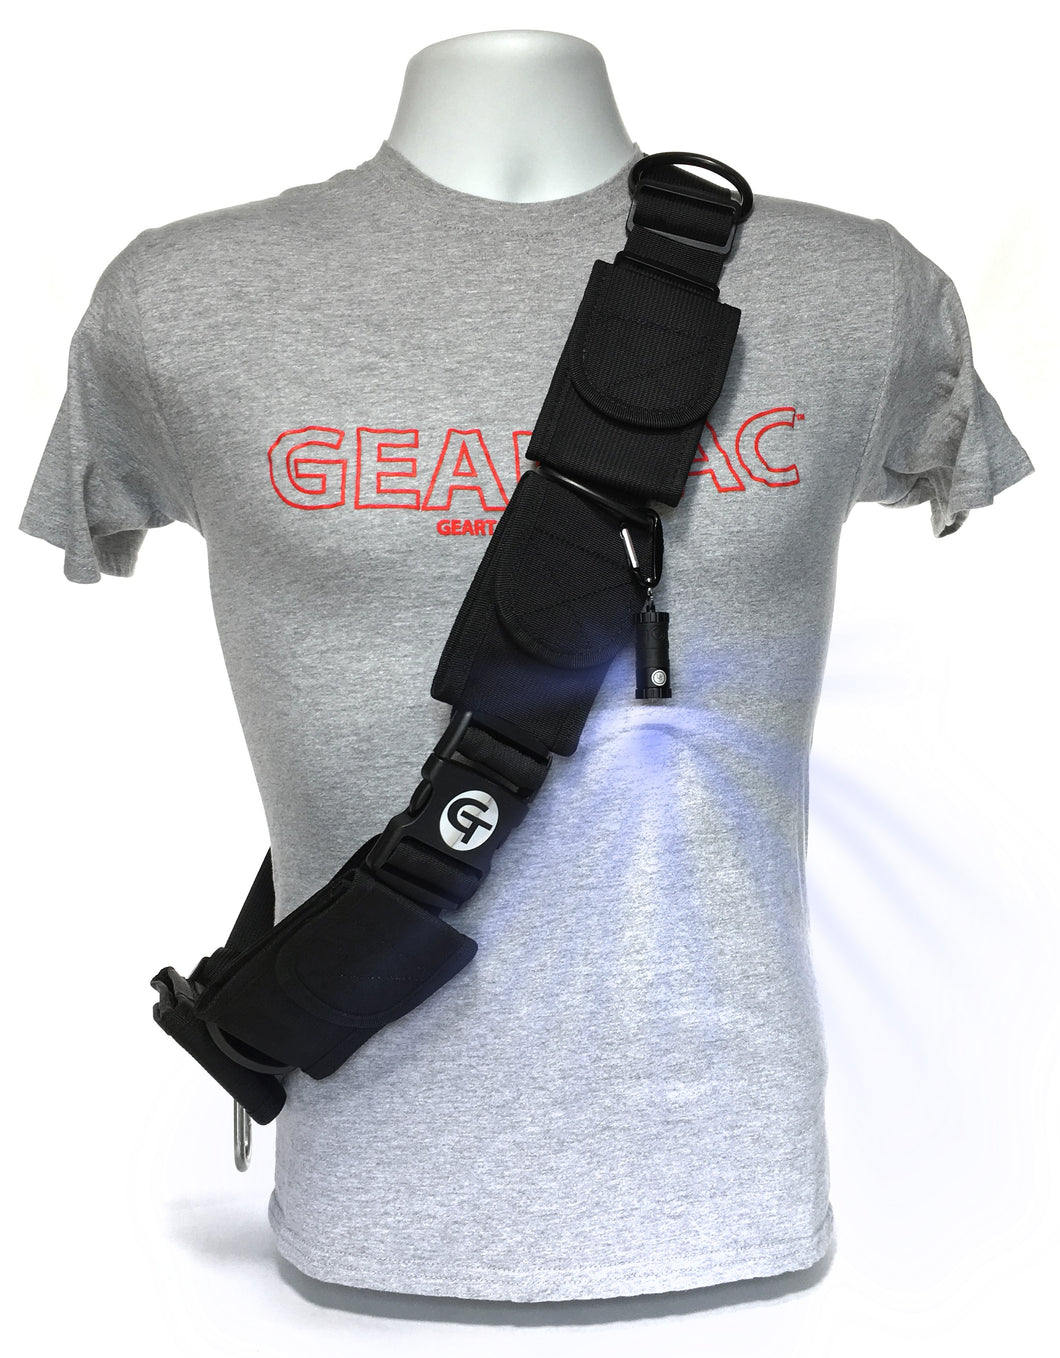 Geartac Systems TAGH1 hands free dog gear for night safety